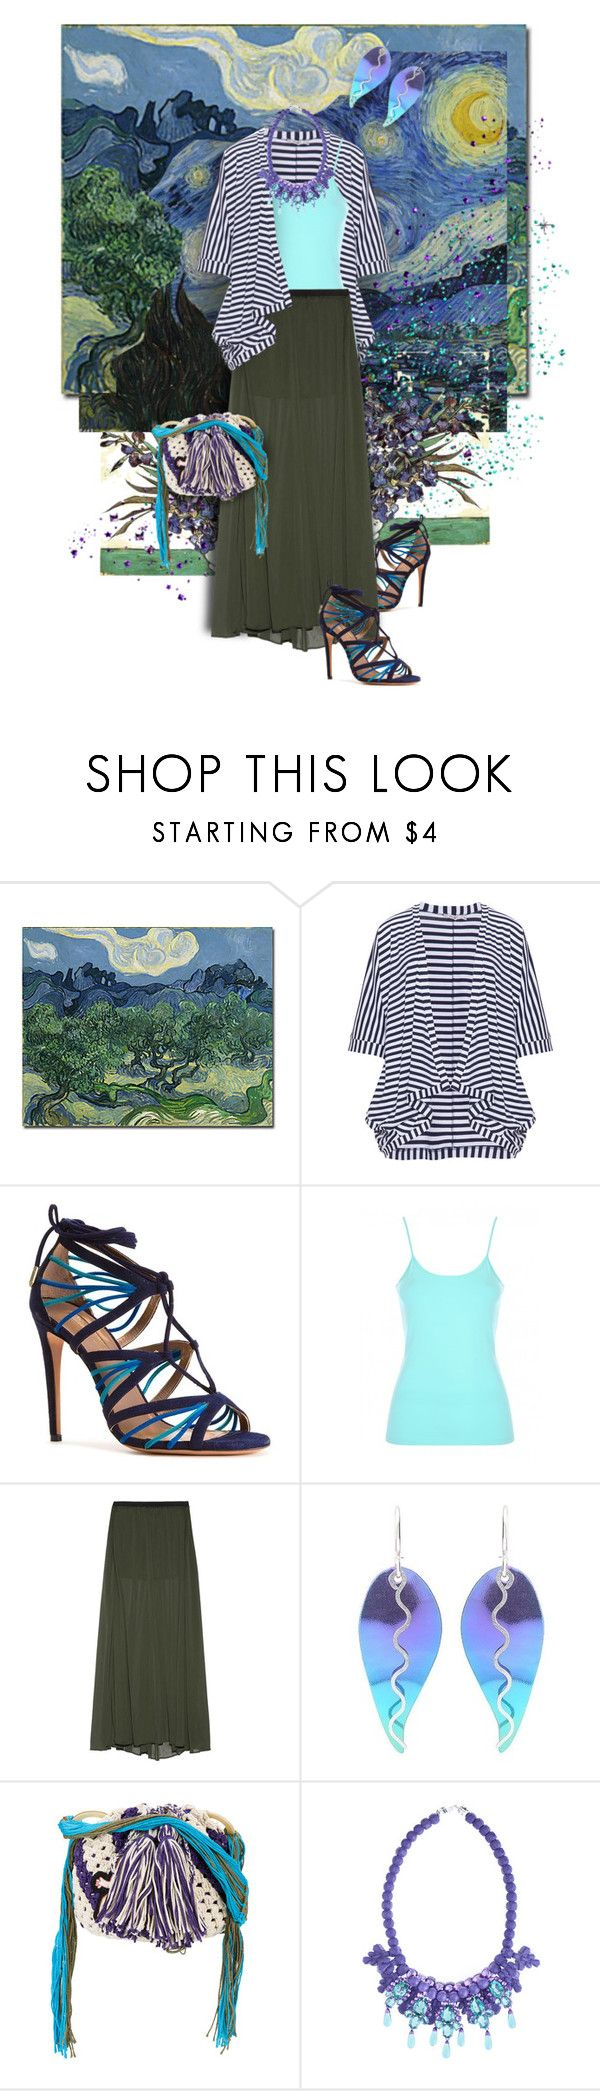 """Summer Night / Van Gogh Inspired"" by valeria-meira ❤ liked on Polyvore featuring Mat, Aquazzura, Enza Costa, Journee Collection, Peter Pilotto, Ek Thongprasert, stripes, maxiskirt, cardigan and strappysandals"